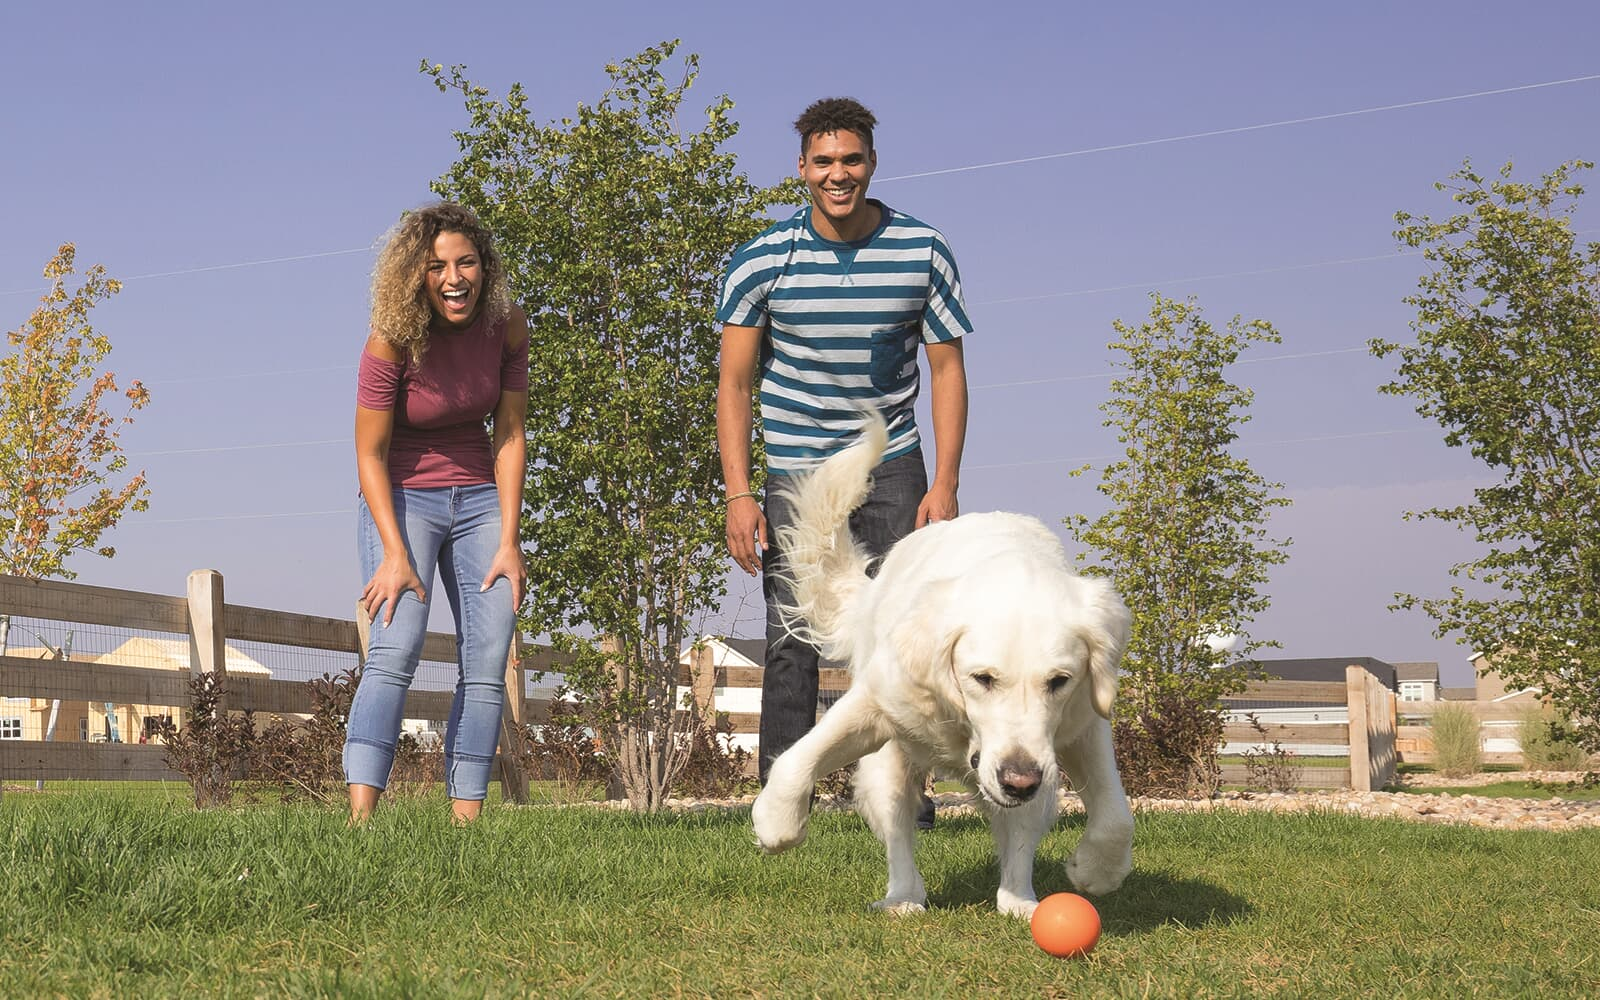 Lifestyle-Crossings-Bark-Couple-Active-Dog-Brighton-Crossings-Denver-Colorado